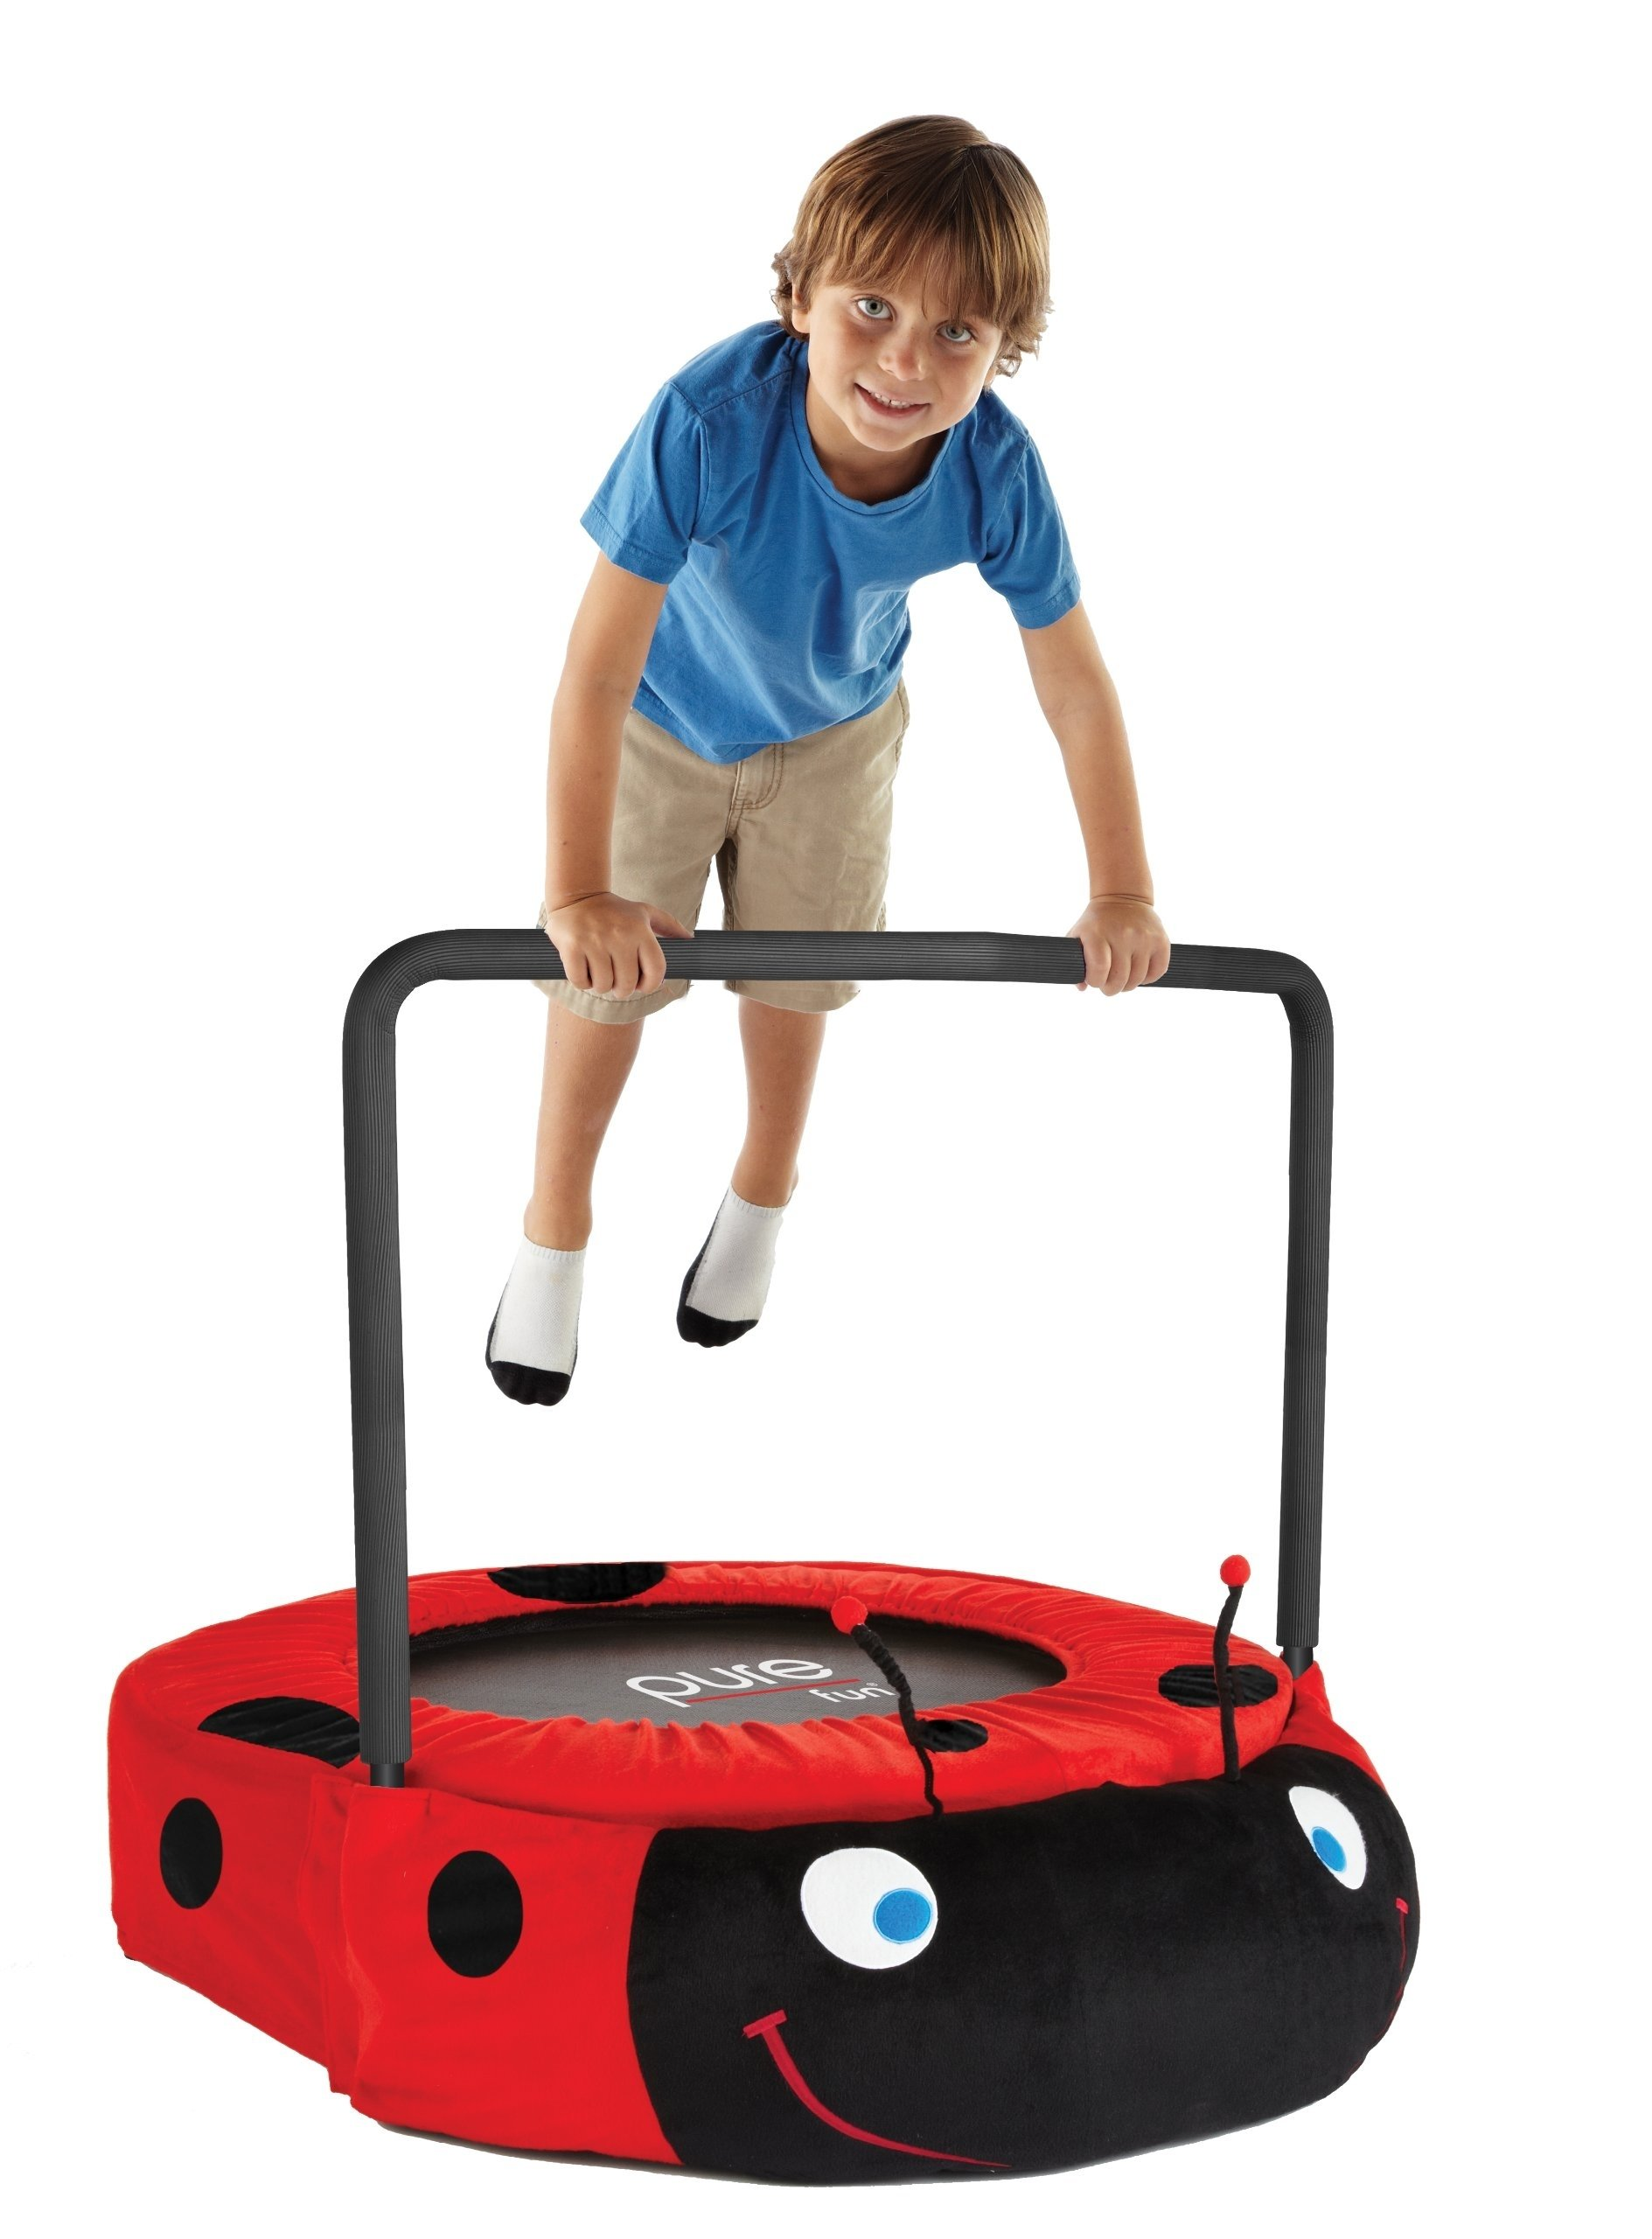 10 Fabulous Gift Idea For 5 Year Old Boy best gifts and toys for 5 year old boys gift toy and babies